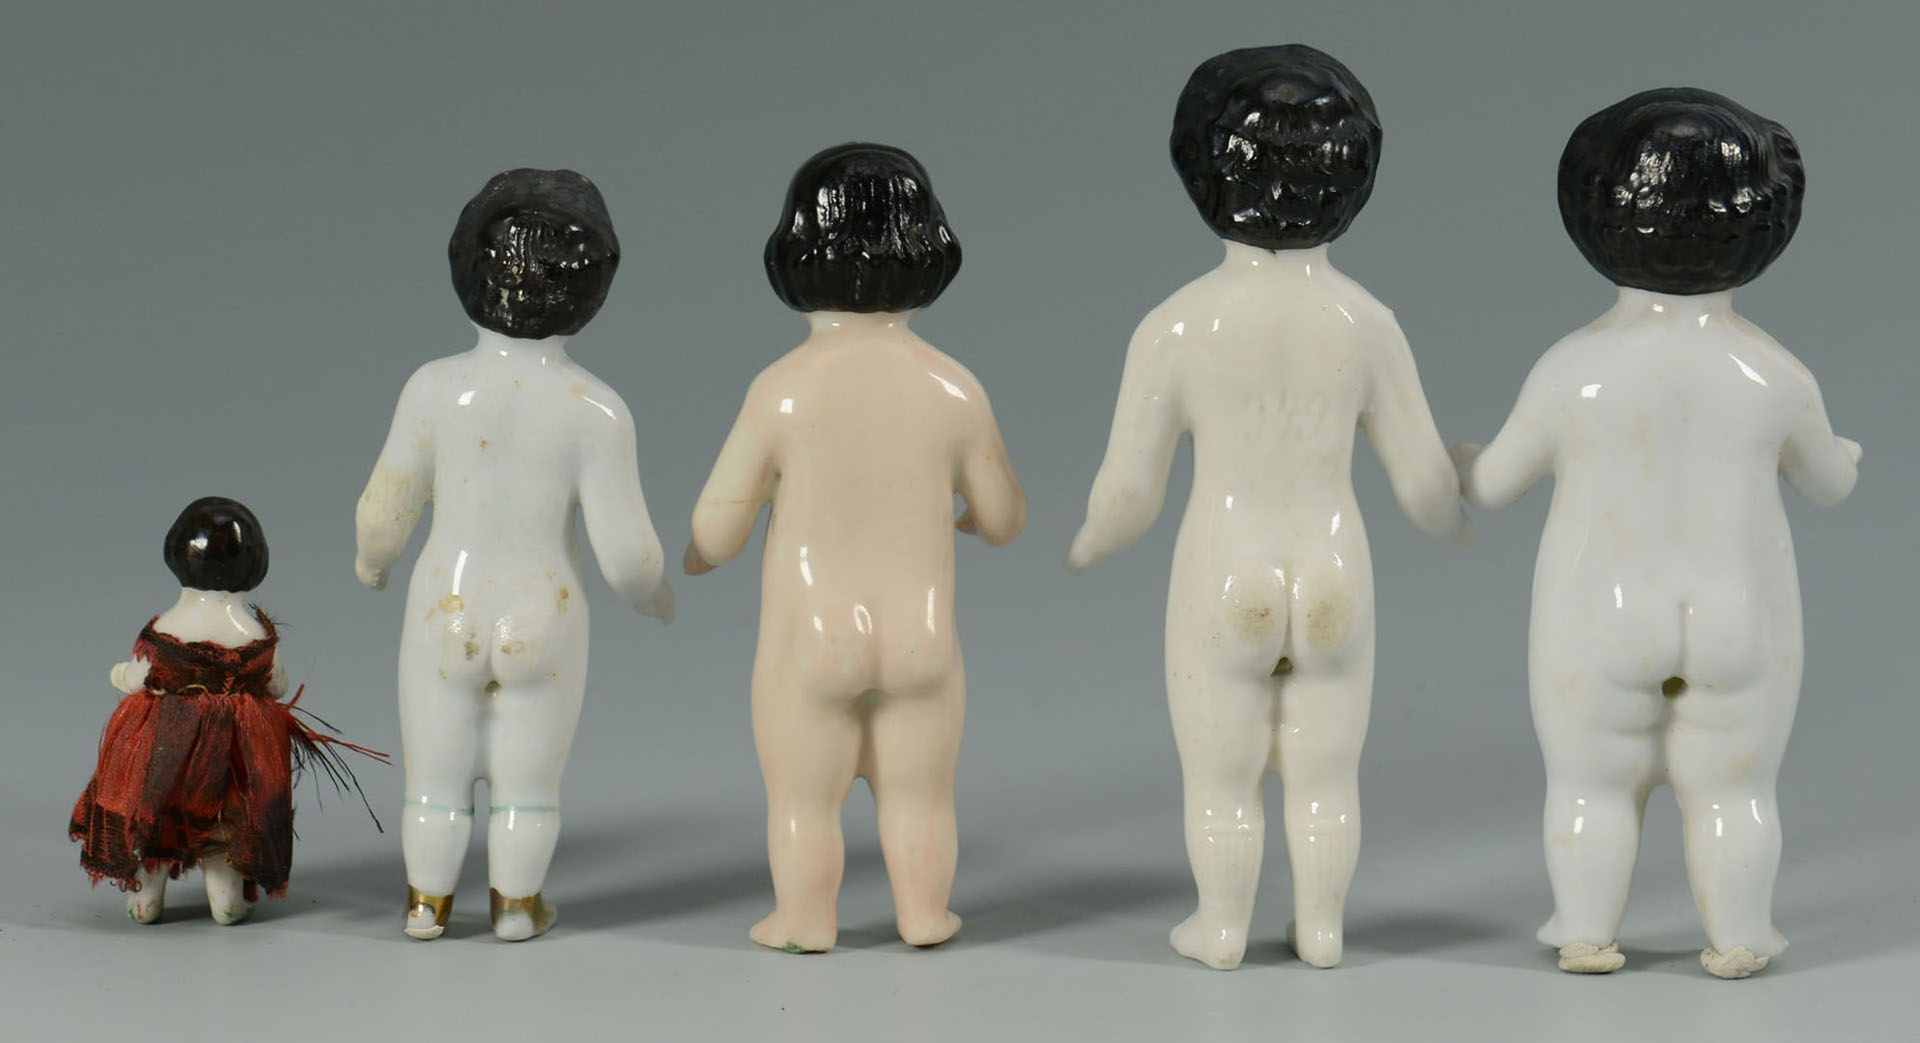 Lot 2872361: Grouping of Frozen Charlotte Figures